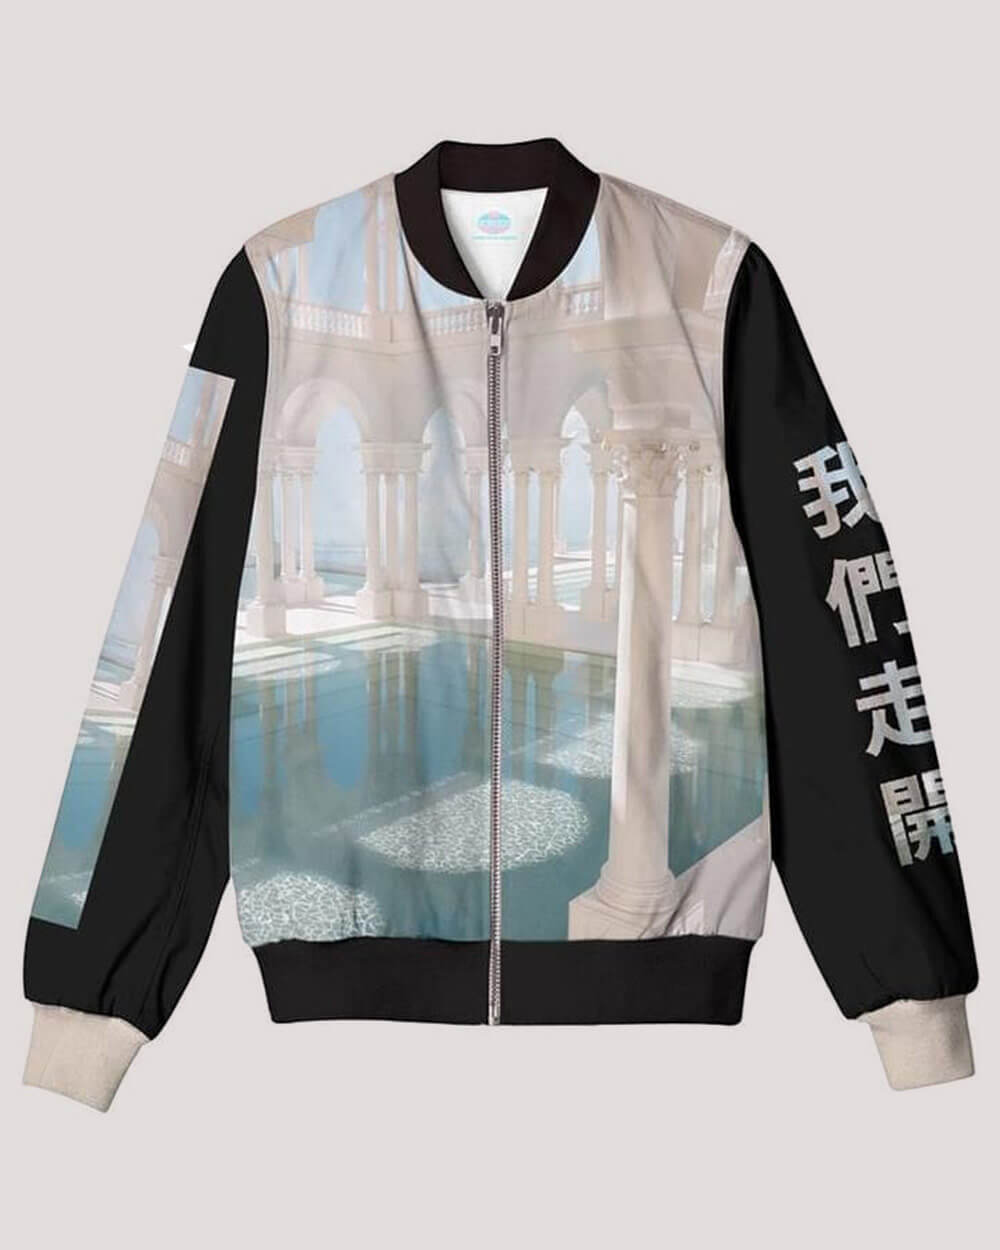 PublicSpace Aesthetic Clothing